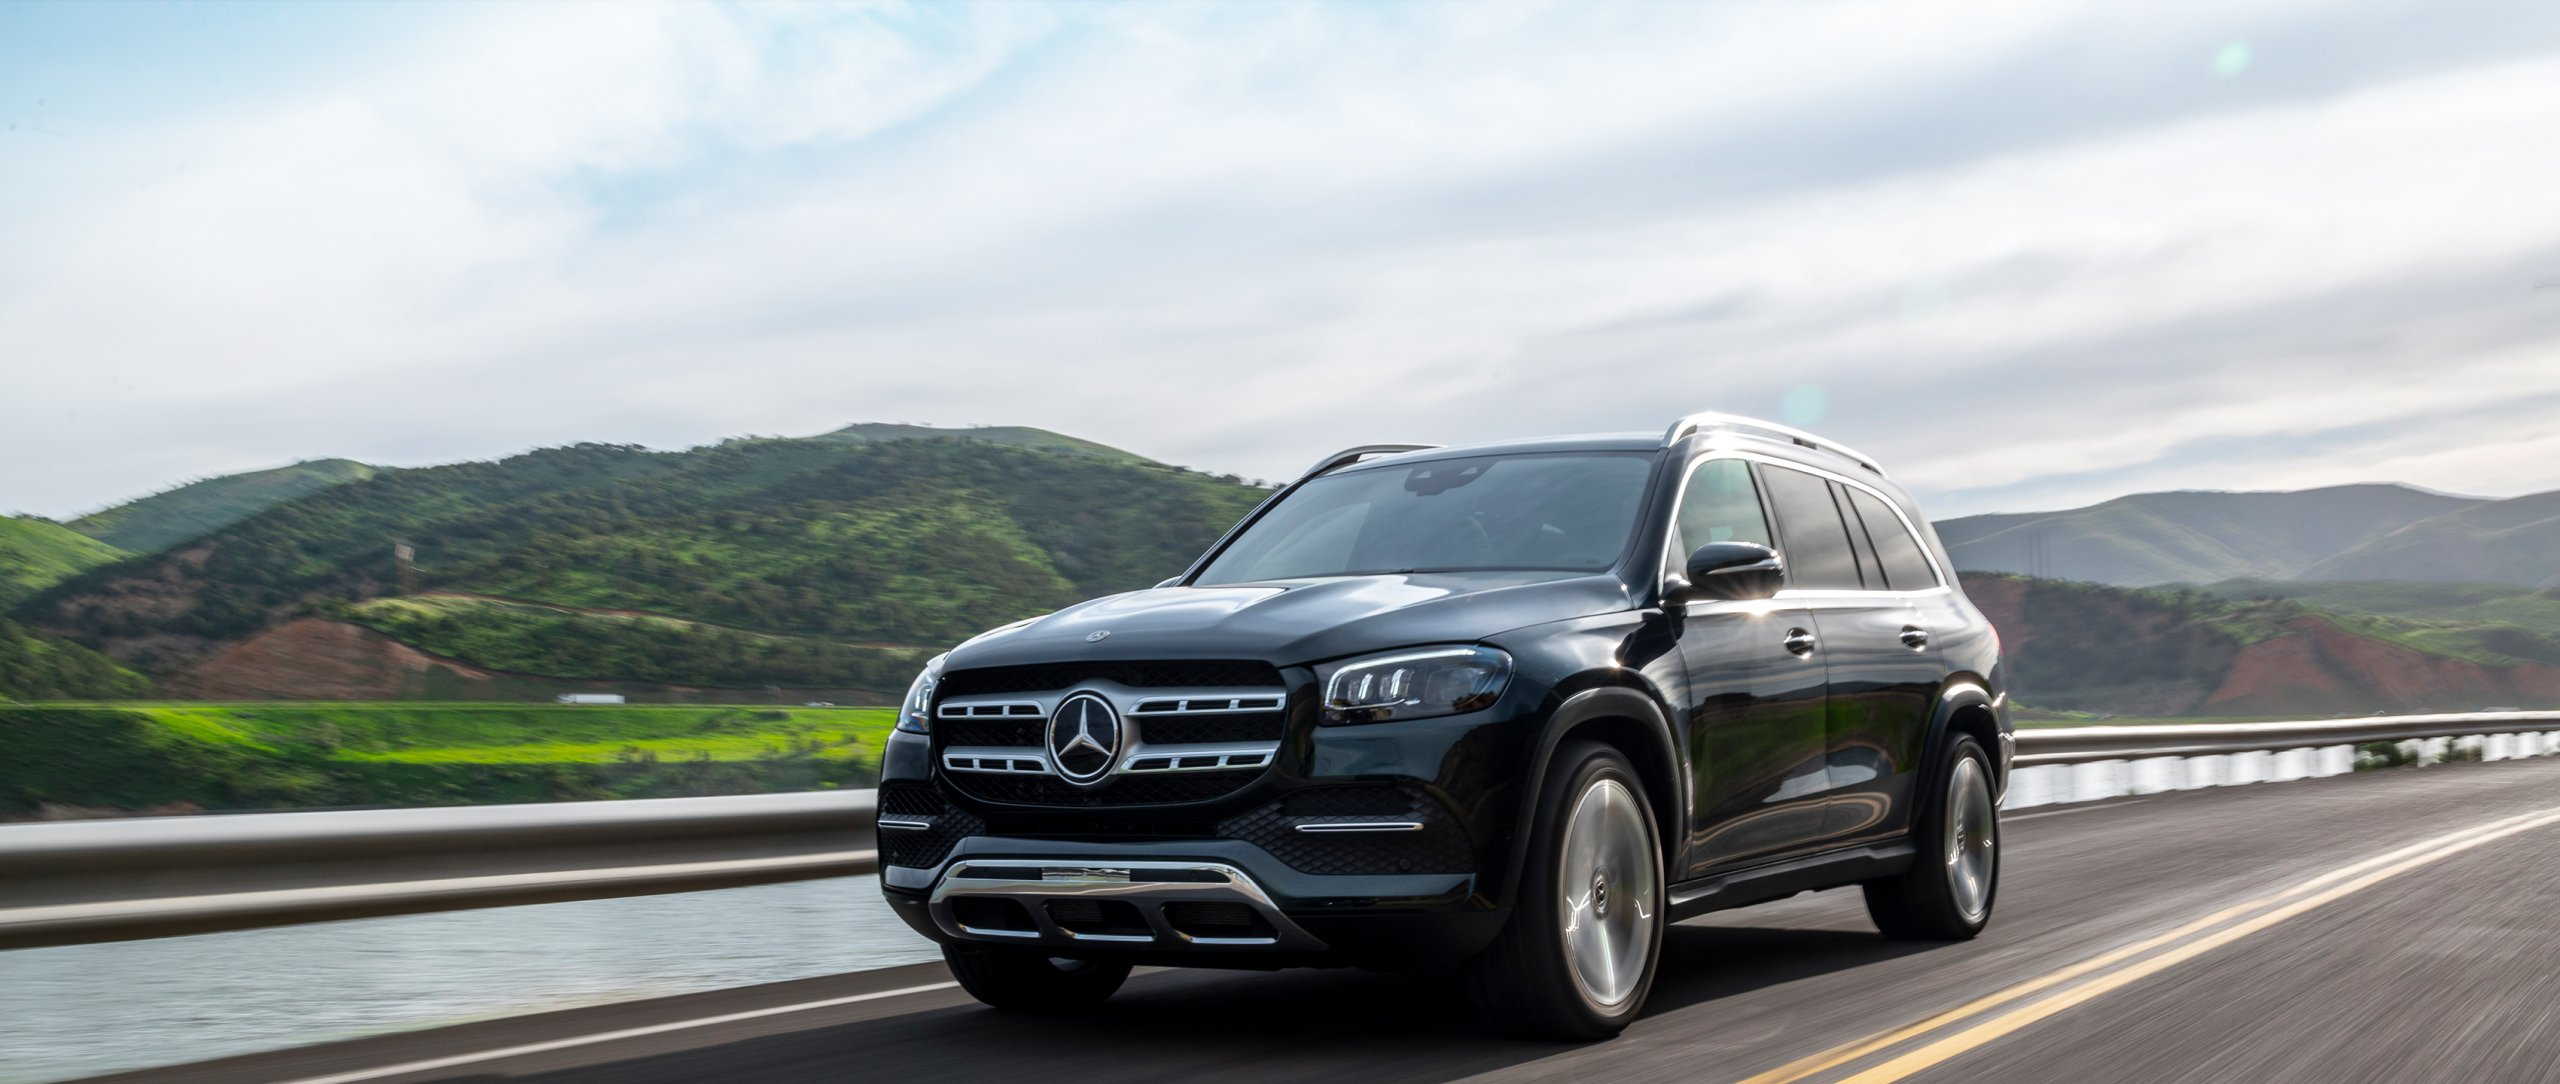 Mercedes-Benz: The Mercedes-Benz GLS uses the latest generation of Mercedes-Benz driving assistance systems to provide cooperative driver support.